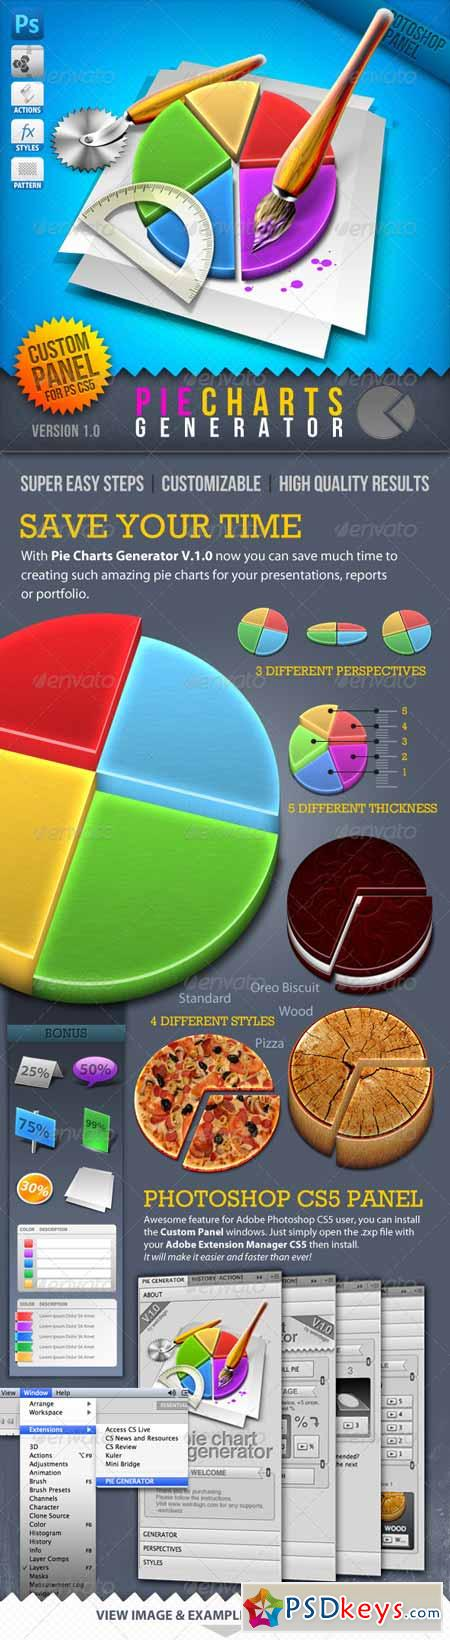 Infographic Tool Series 3D Pie Charts Generator 888921